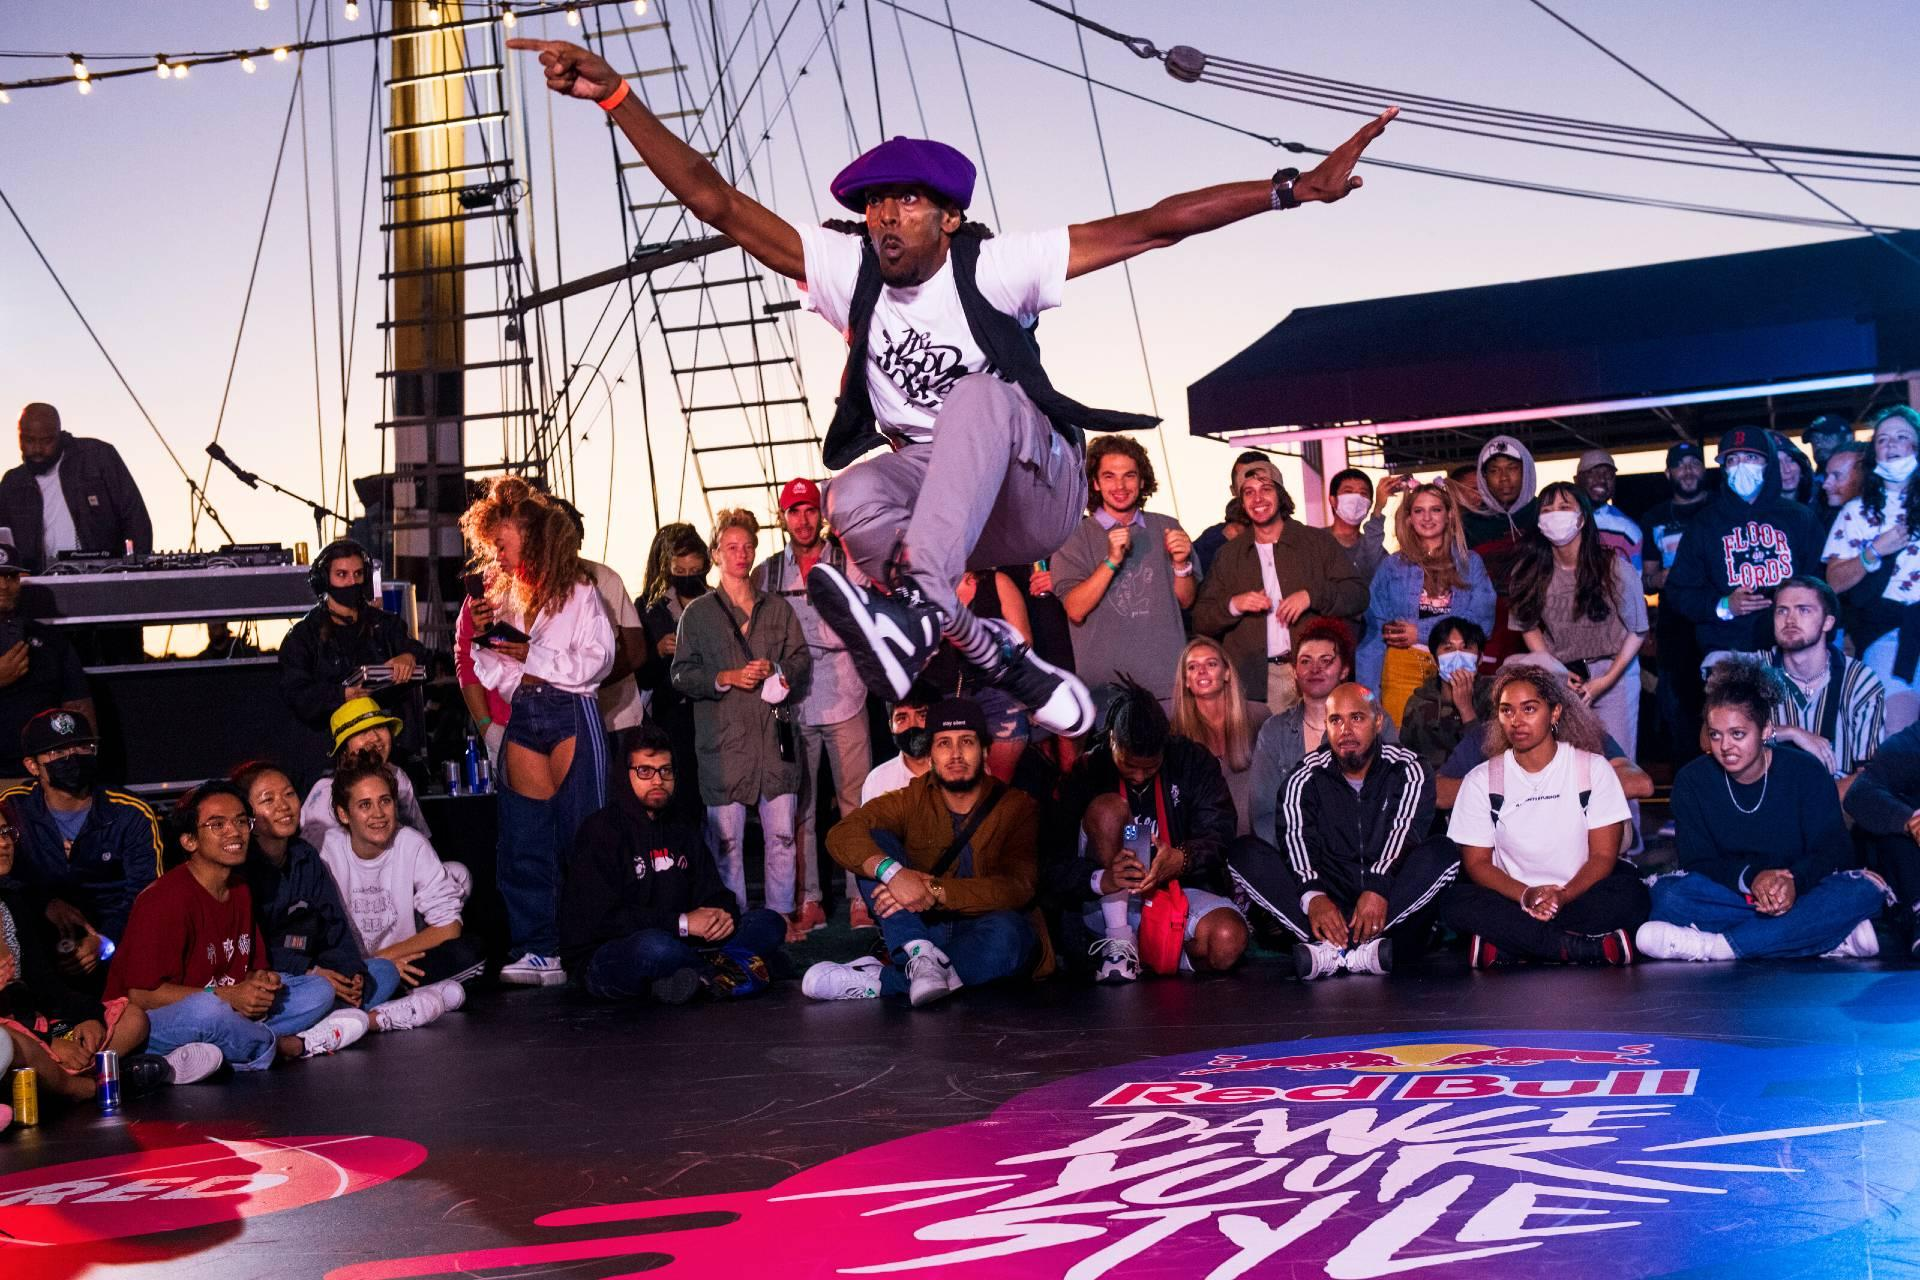 Riotthavirus competes in the Red Bull Dance Your Style Qualifier in Boston on September 10, 2021 (Drew Gurian / Red Bull Content Pool)